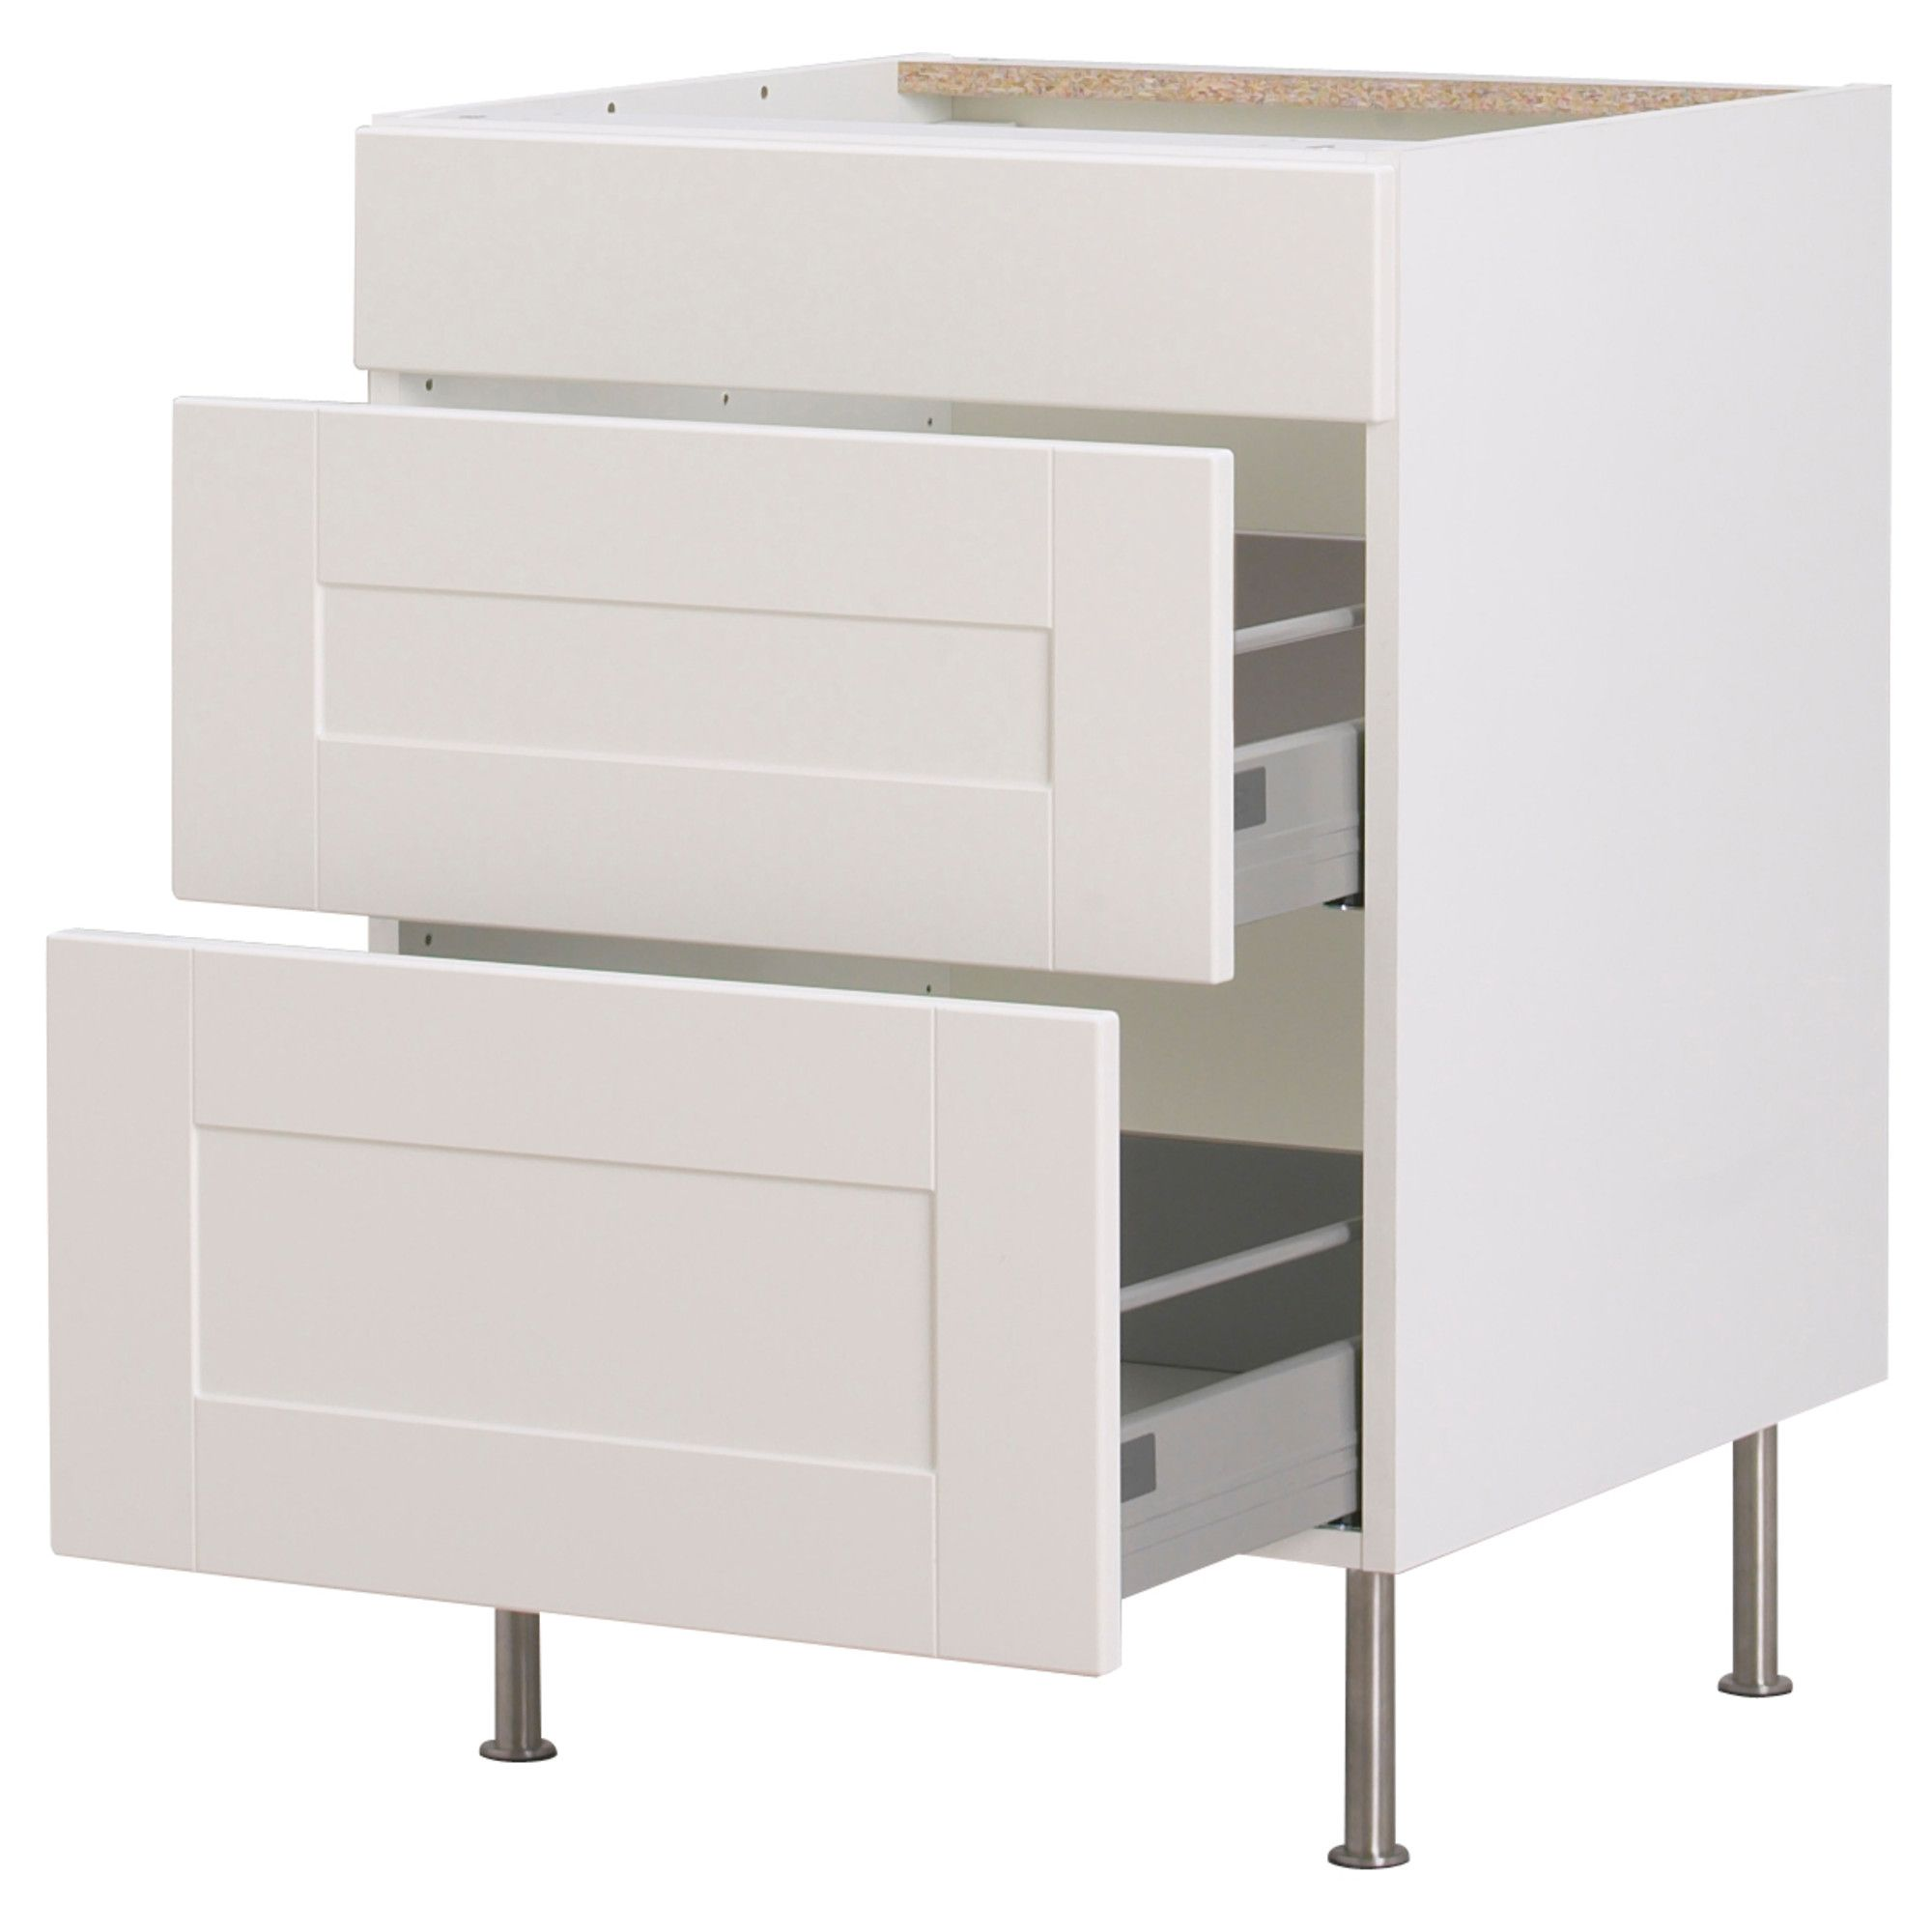 Kitchen Cabinets AKURUM Base Cabinet With 3 Drawers White Ädel